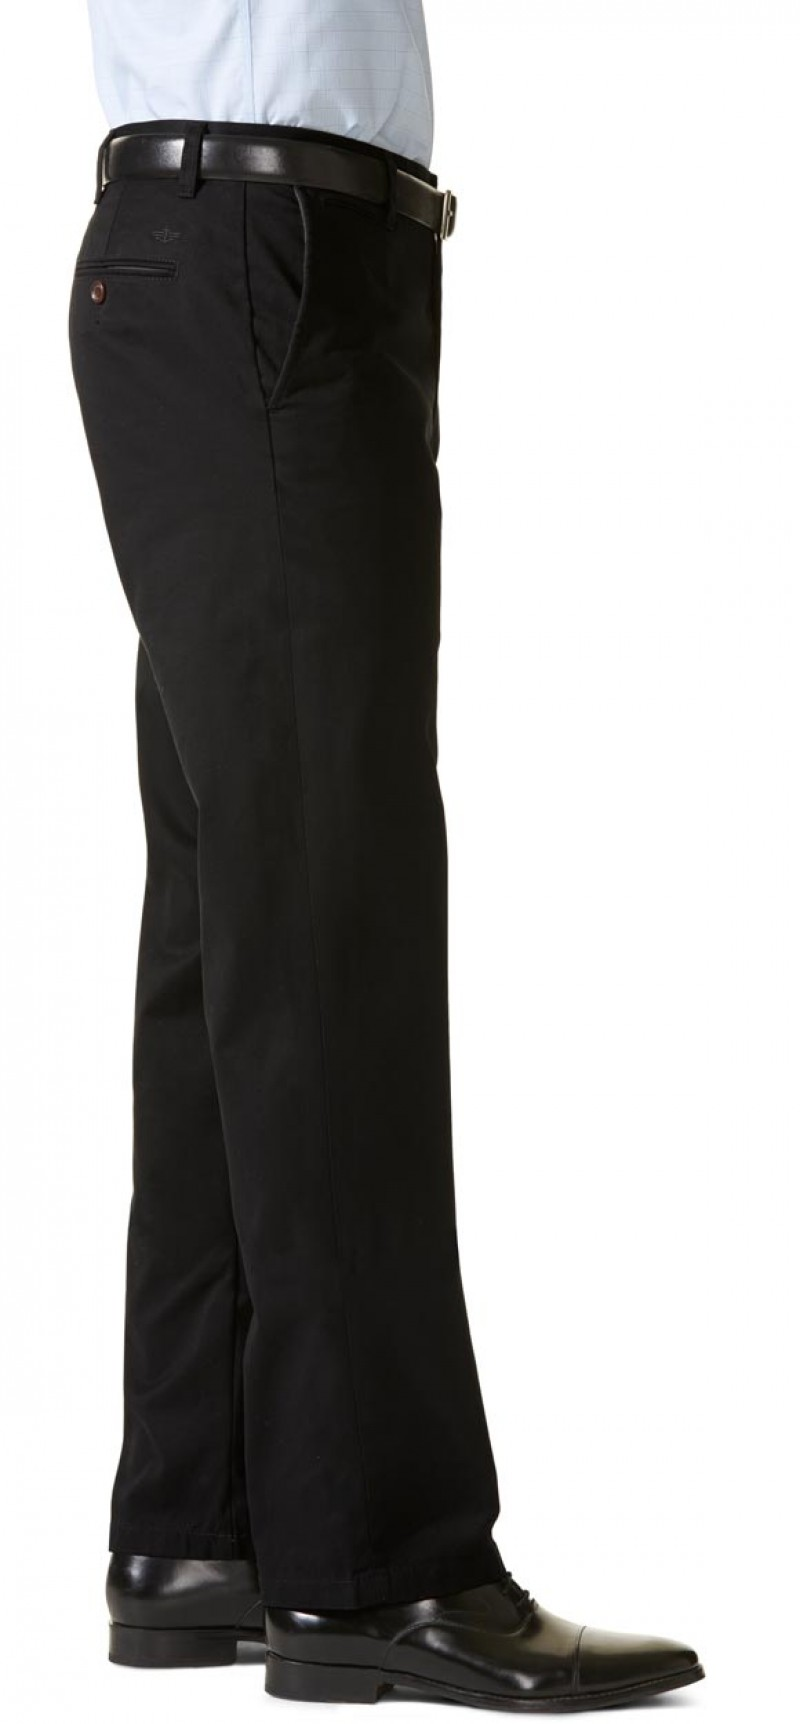 Dockers D2 New Premium Core - Black v